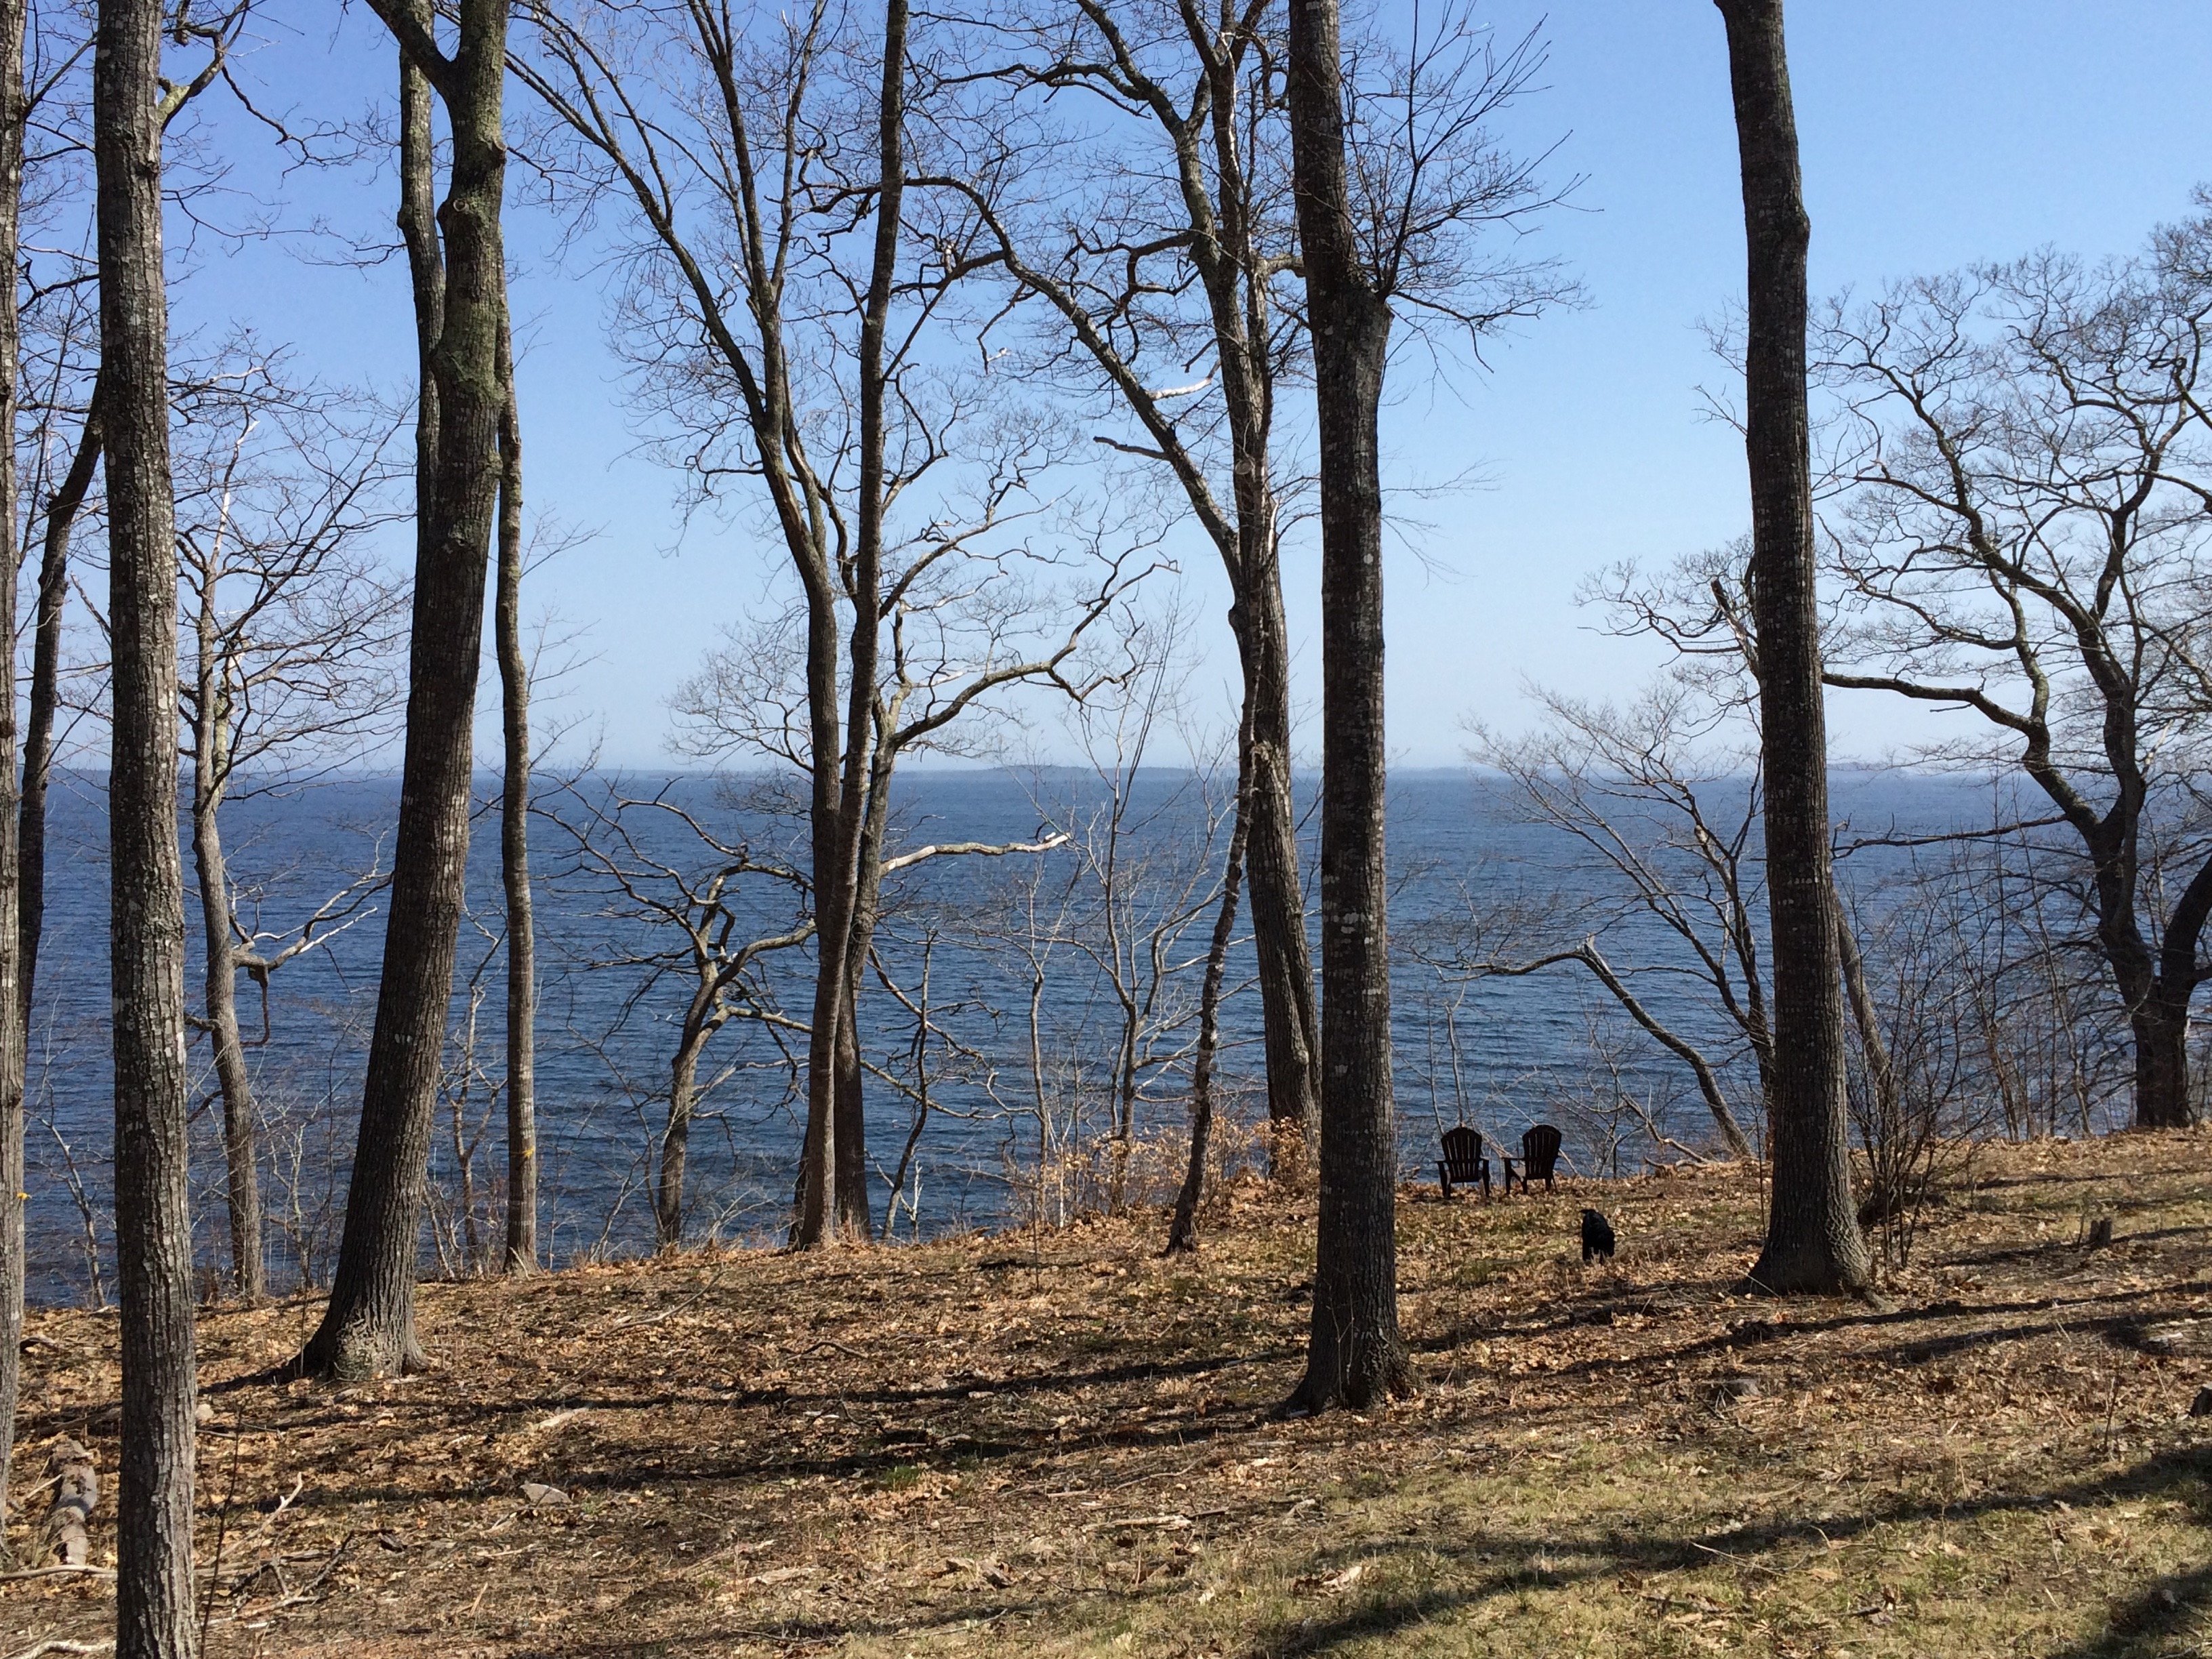 Land for Sale at Camden Road (Land Lot) 0 Belfast Road Camden, Maine 04843 United States